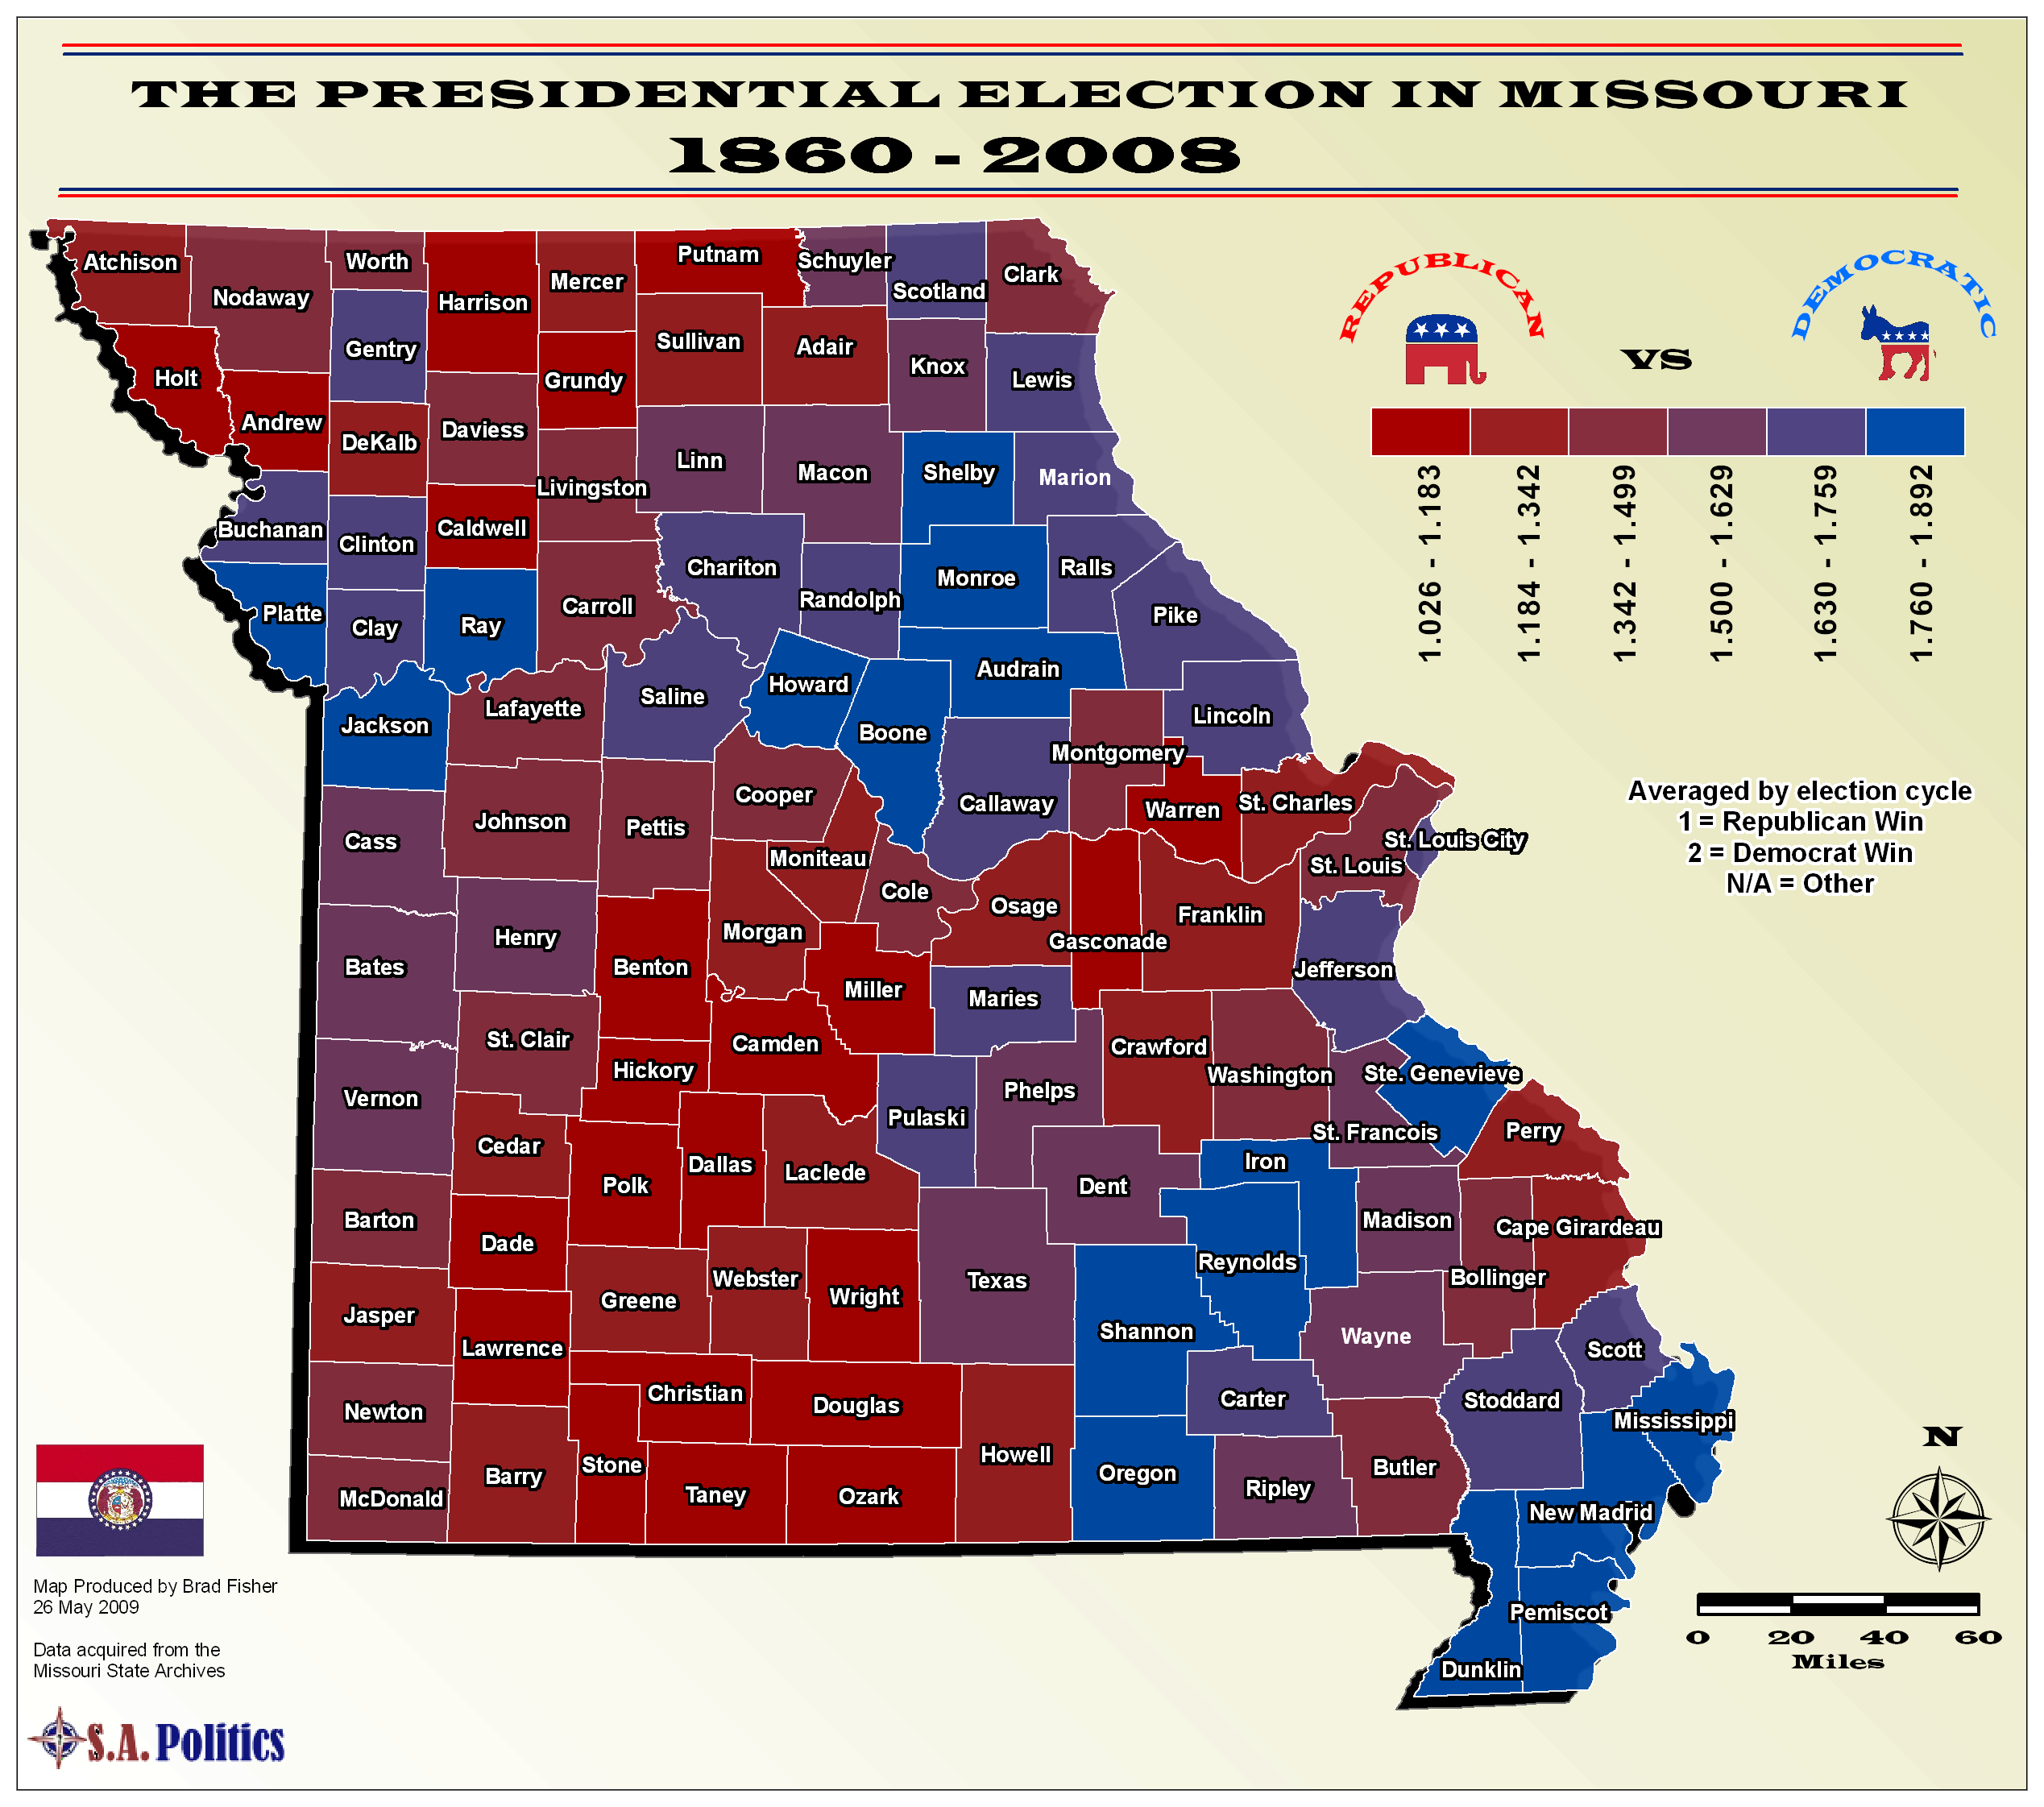 Political Leanings By Missouri County Map Missouri Mappery - Us political map by county